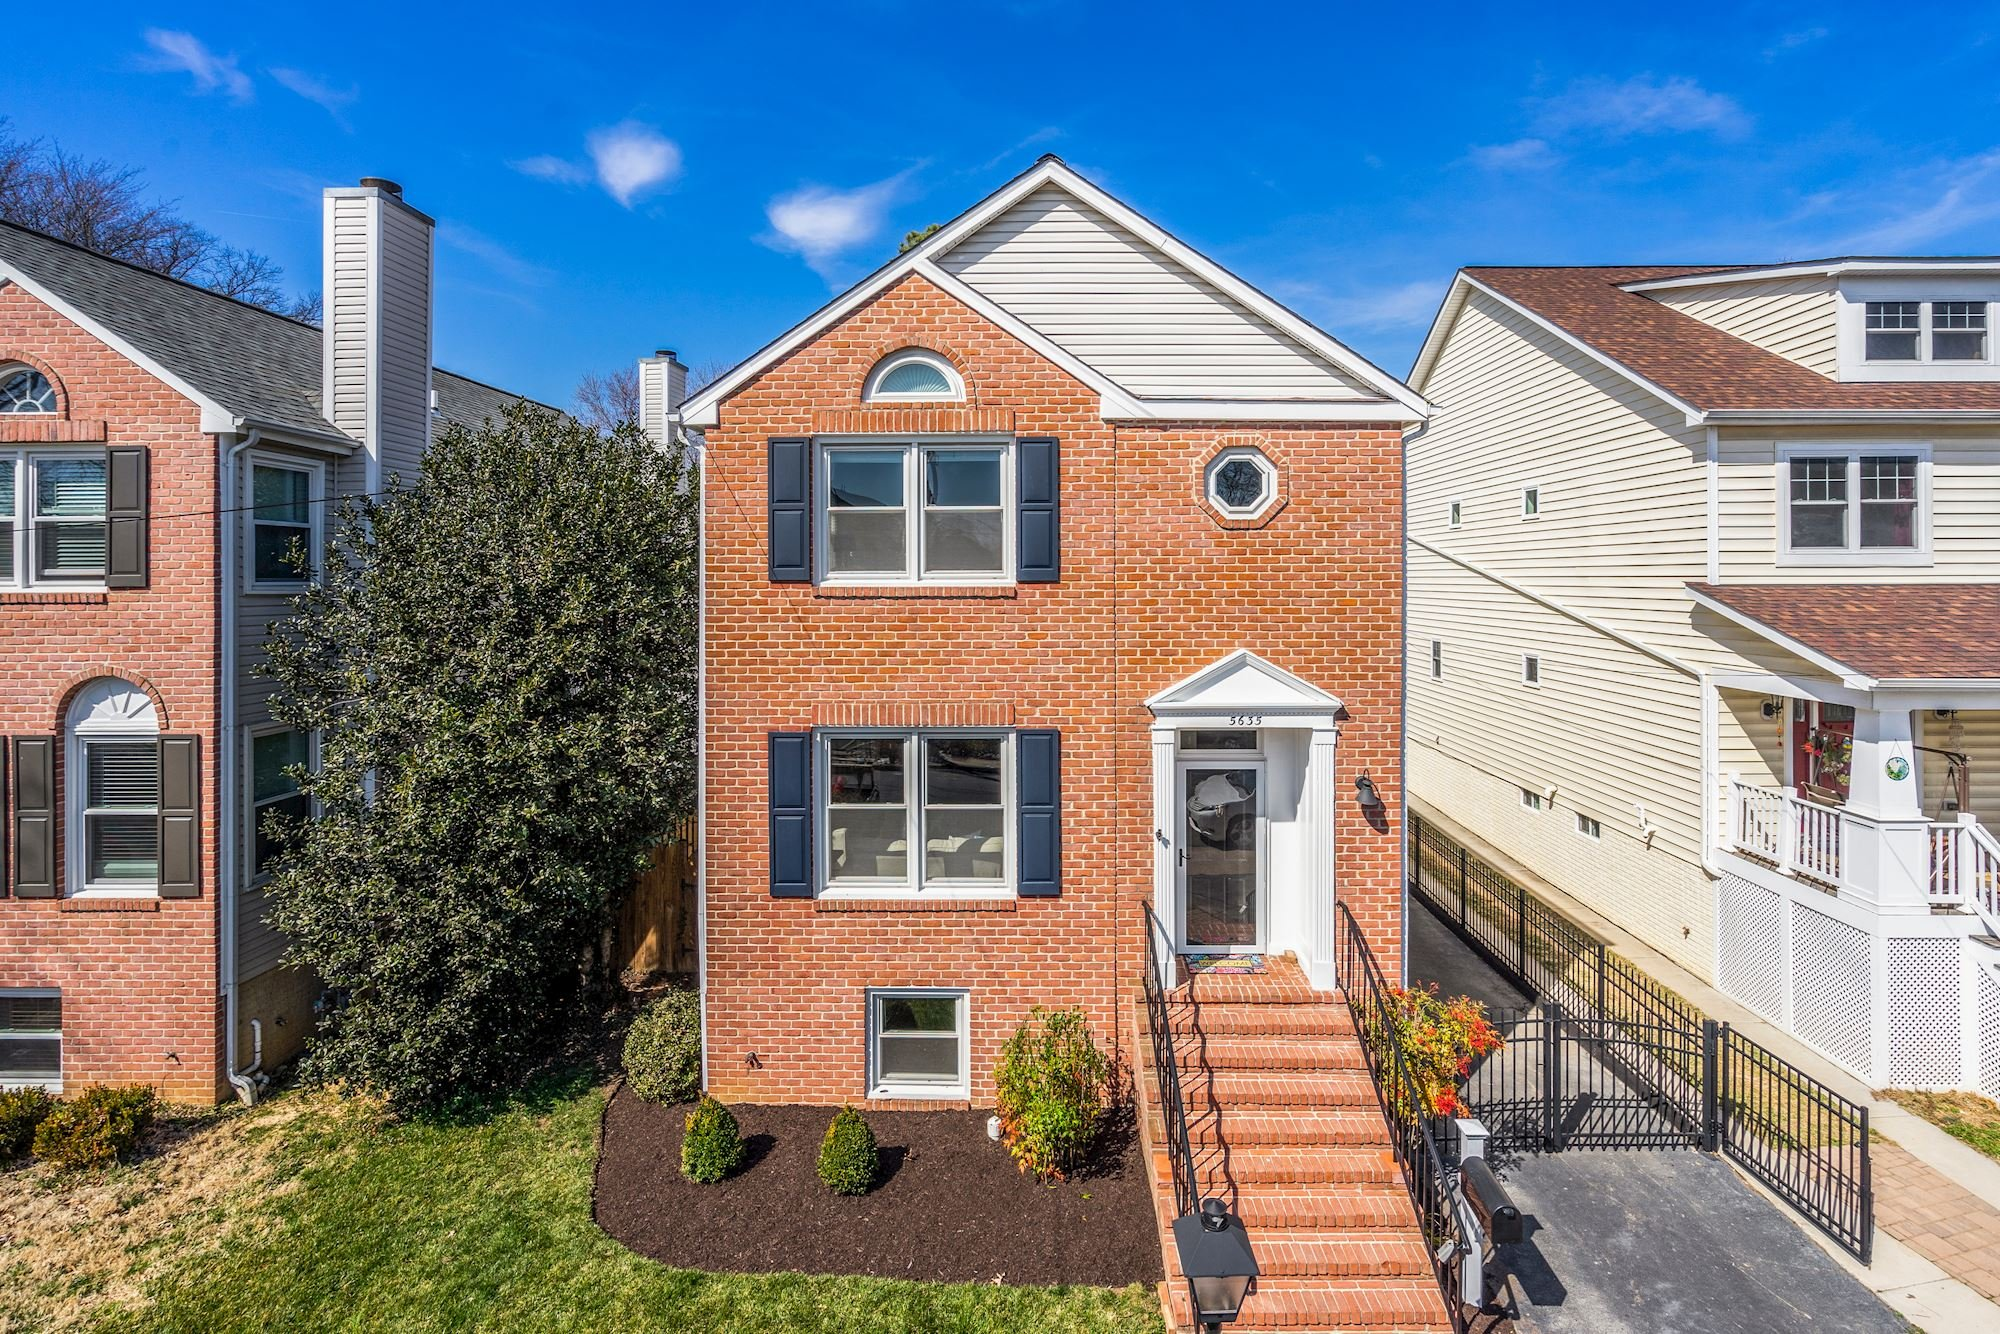 Perfectly Proportioned 4BR/3.5BA Single Family Home in Arlington, VA